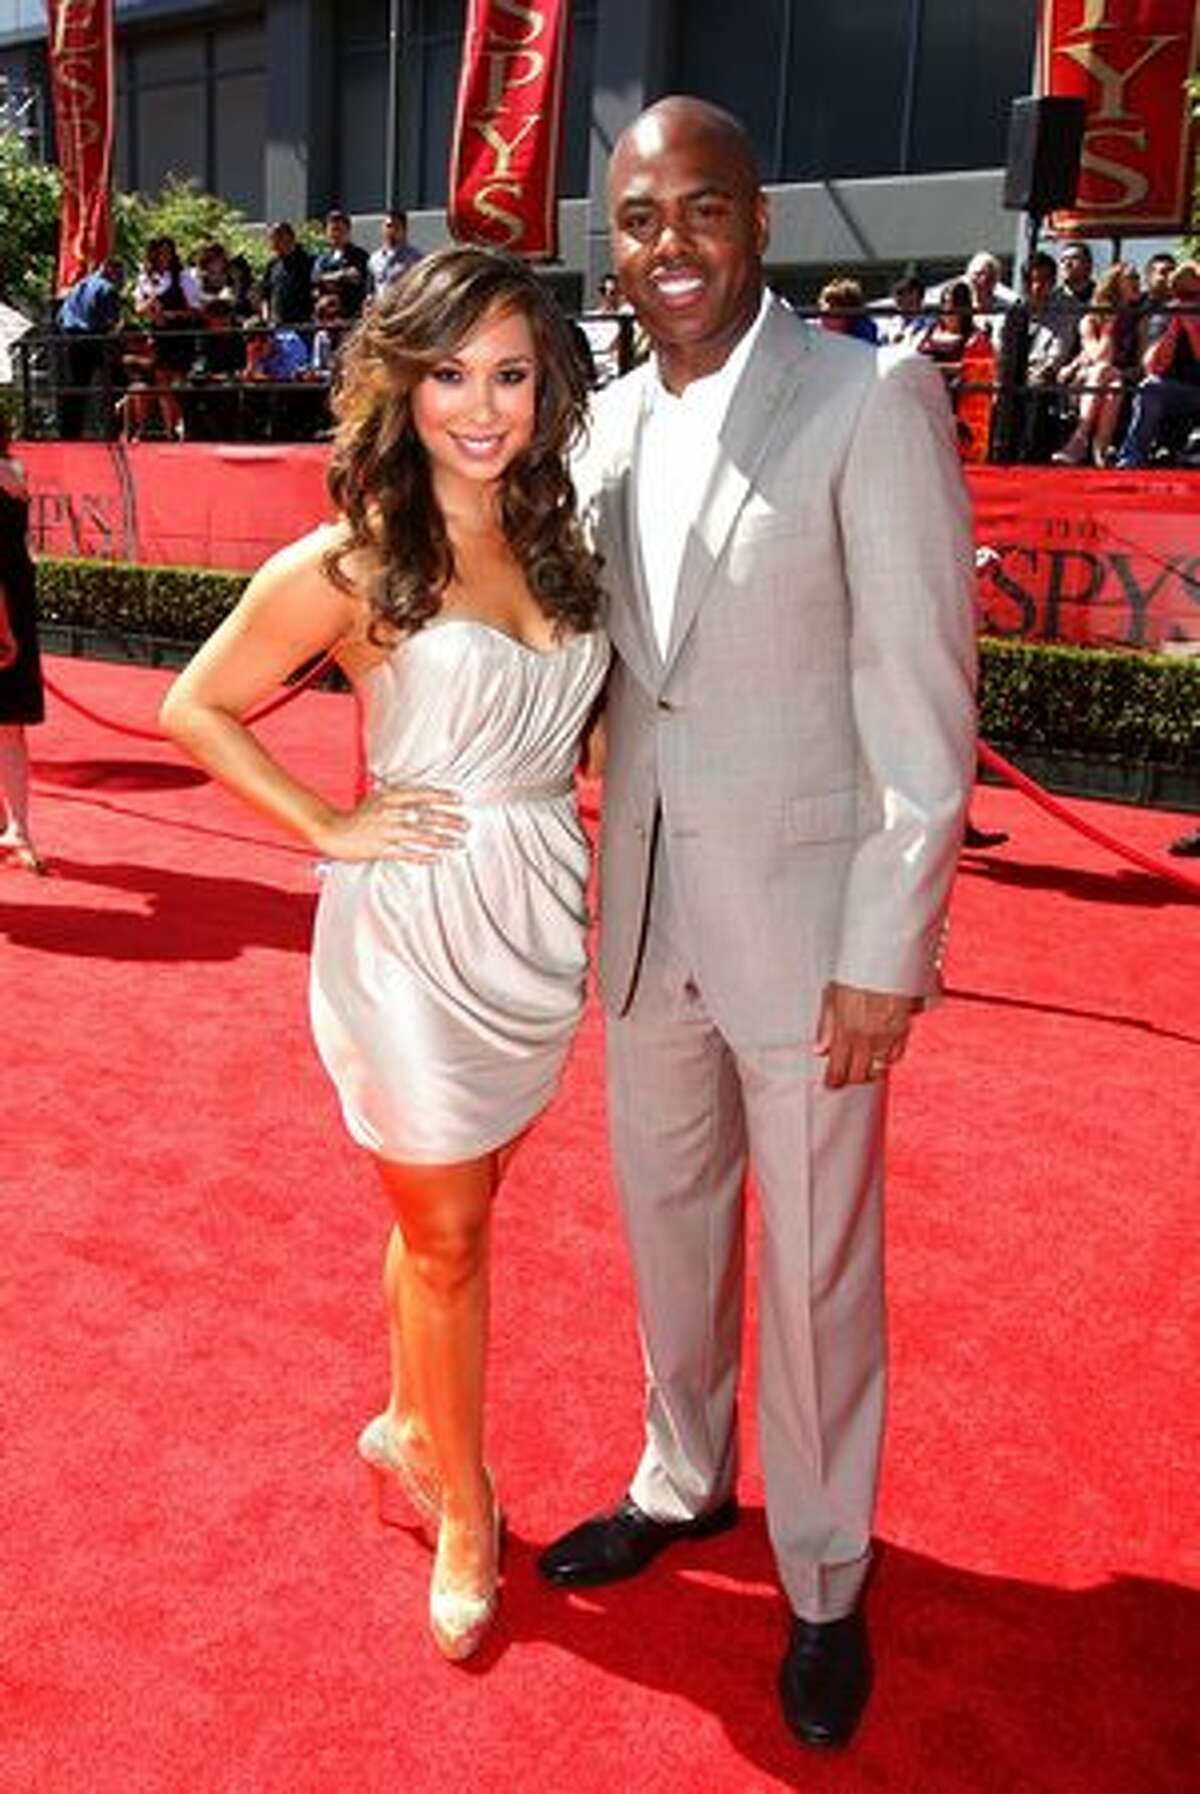 TV personalities Kevin Frazier and Cheryl Burke arrive.